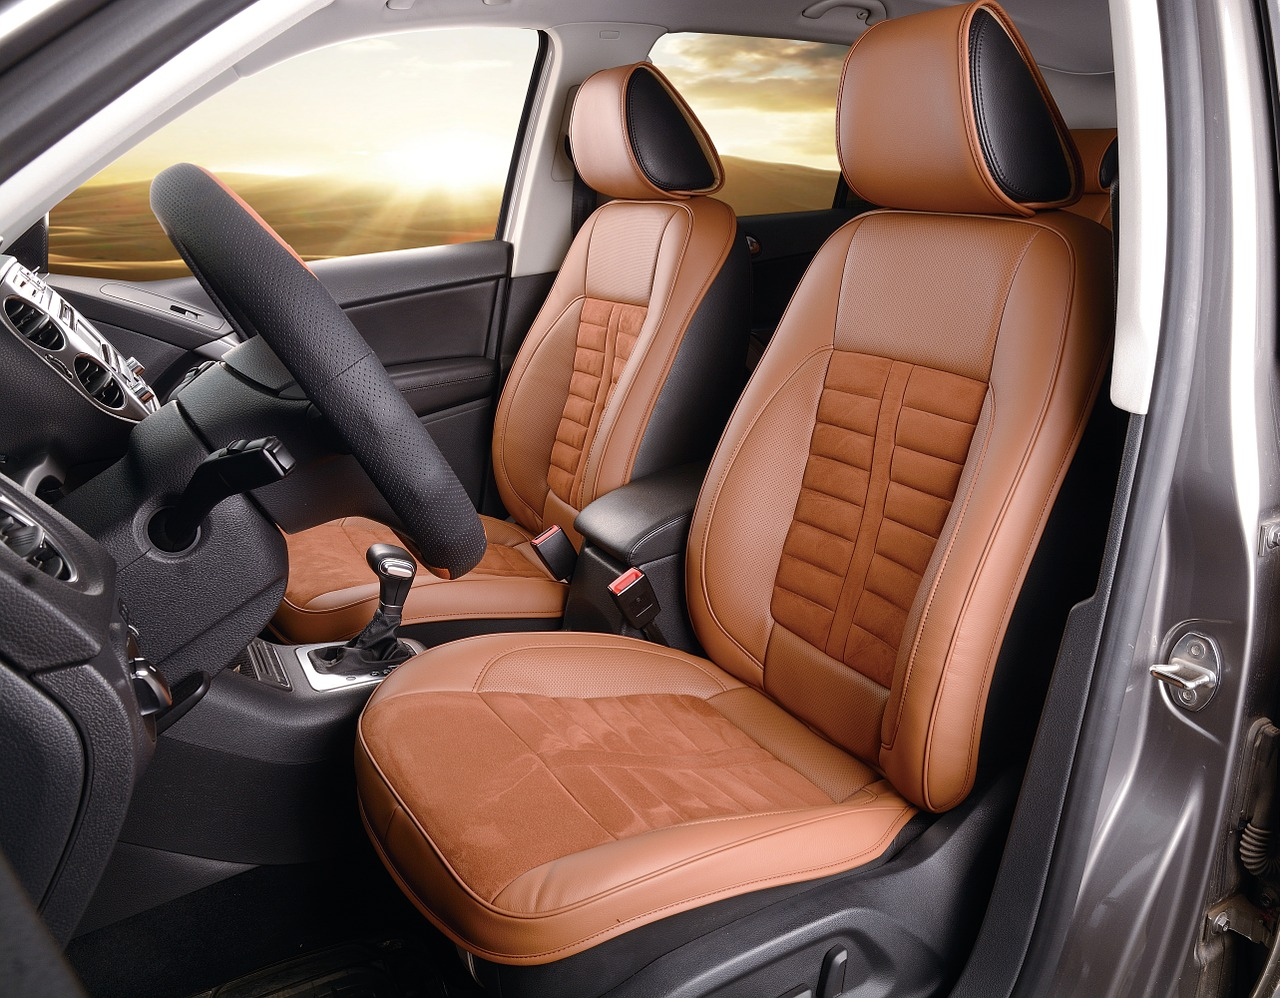 How to Clean Your Leather Car Seats